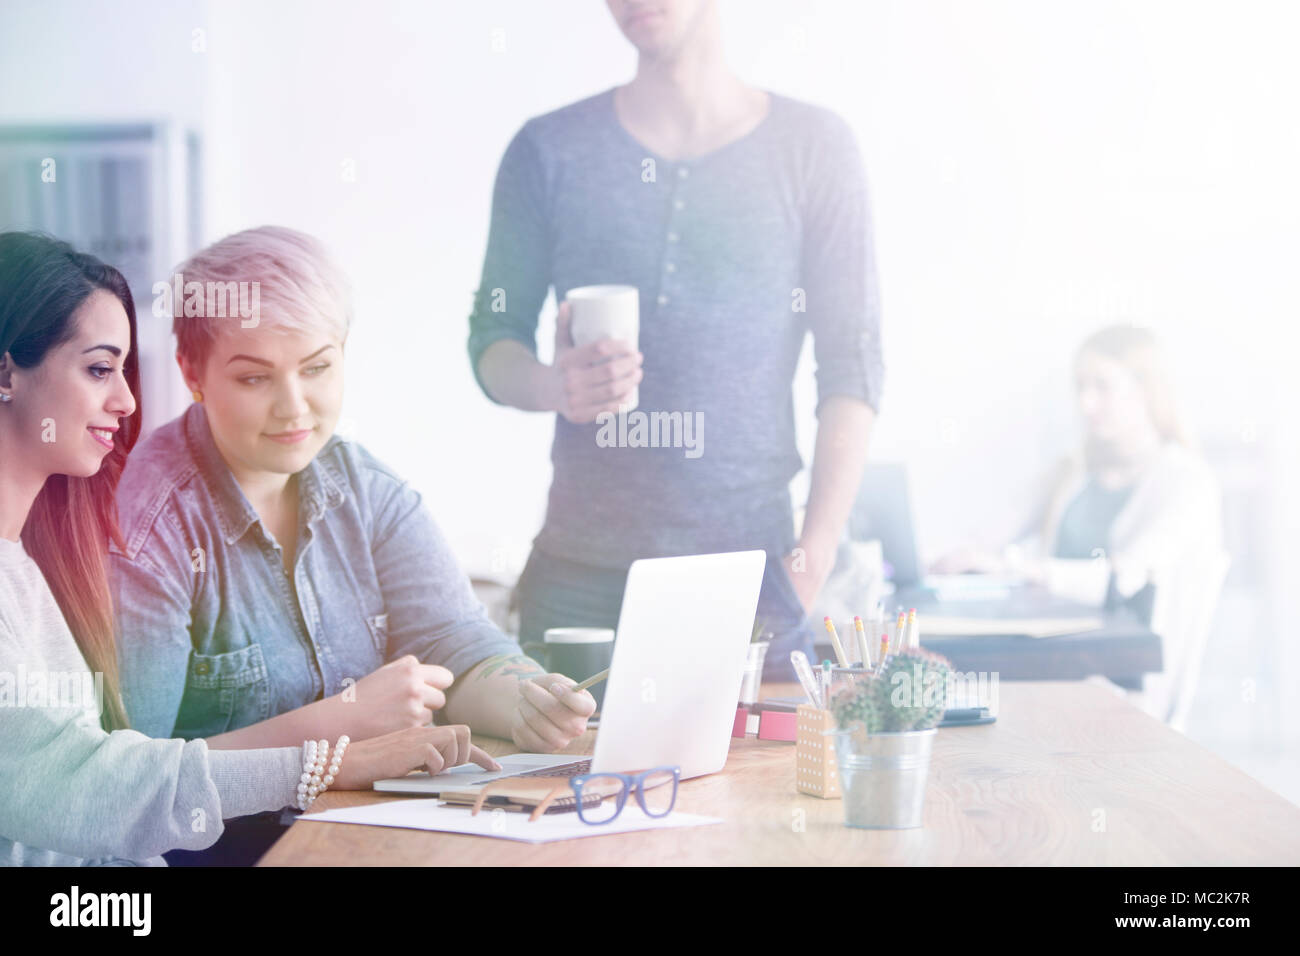 Two women sitting in an office with laptop and man standing next to them - Stock Image